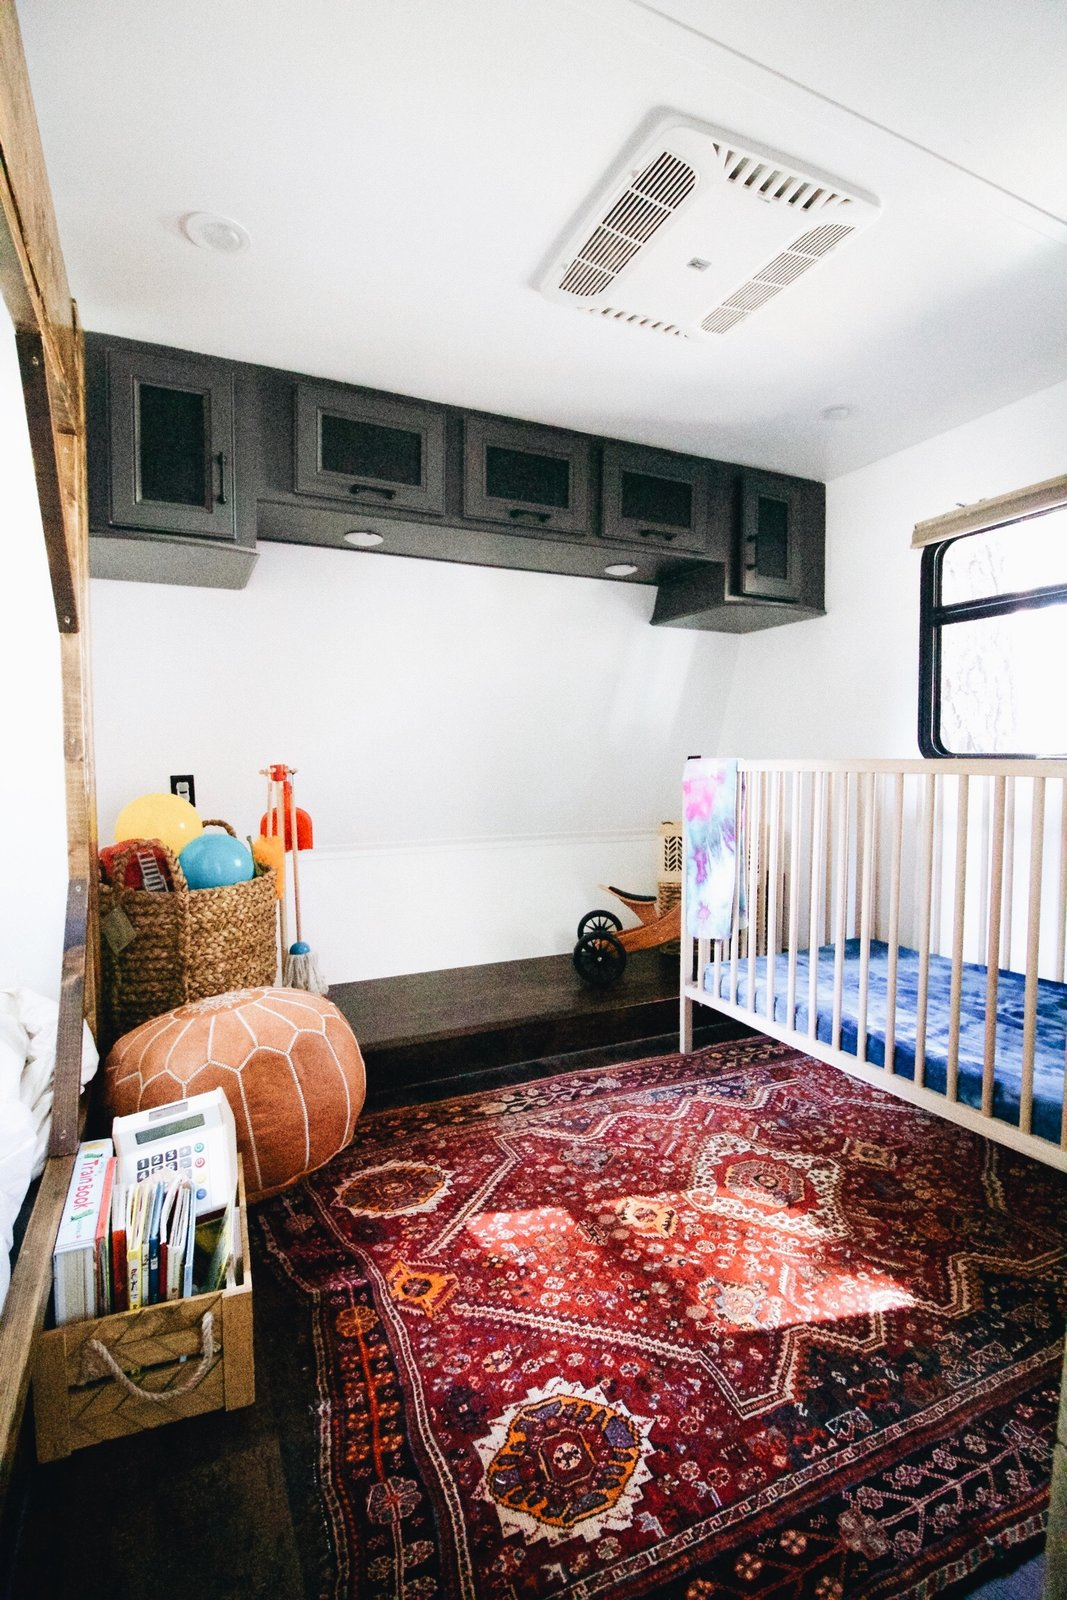 The children's room has a sliding closet and dresser, a short mattress and a tiny entertainment zone.